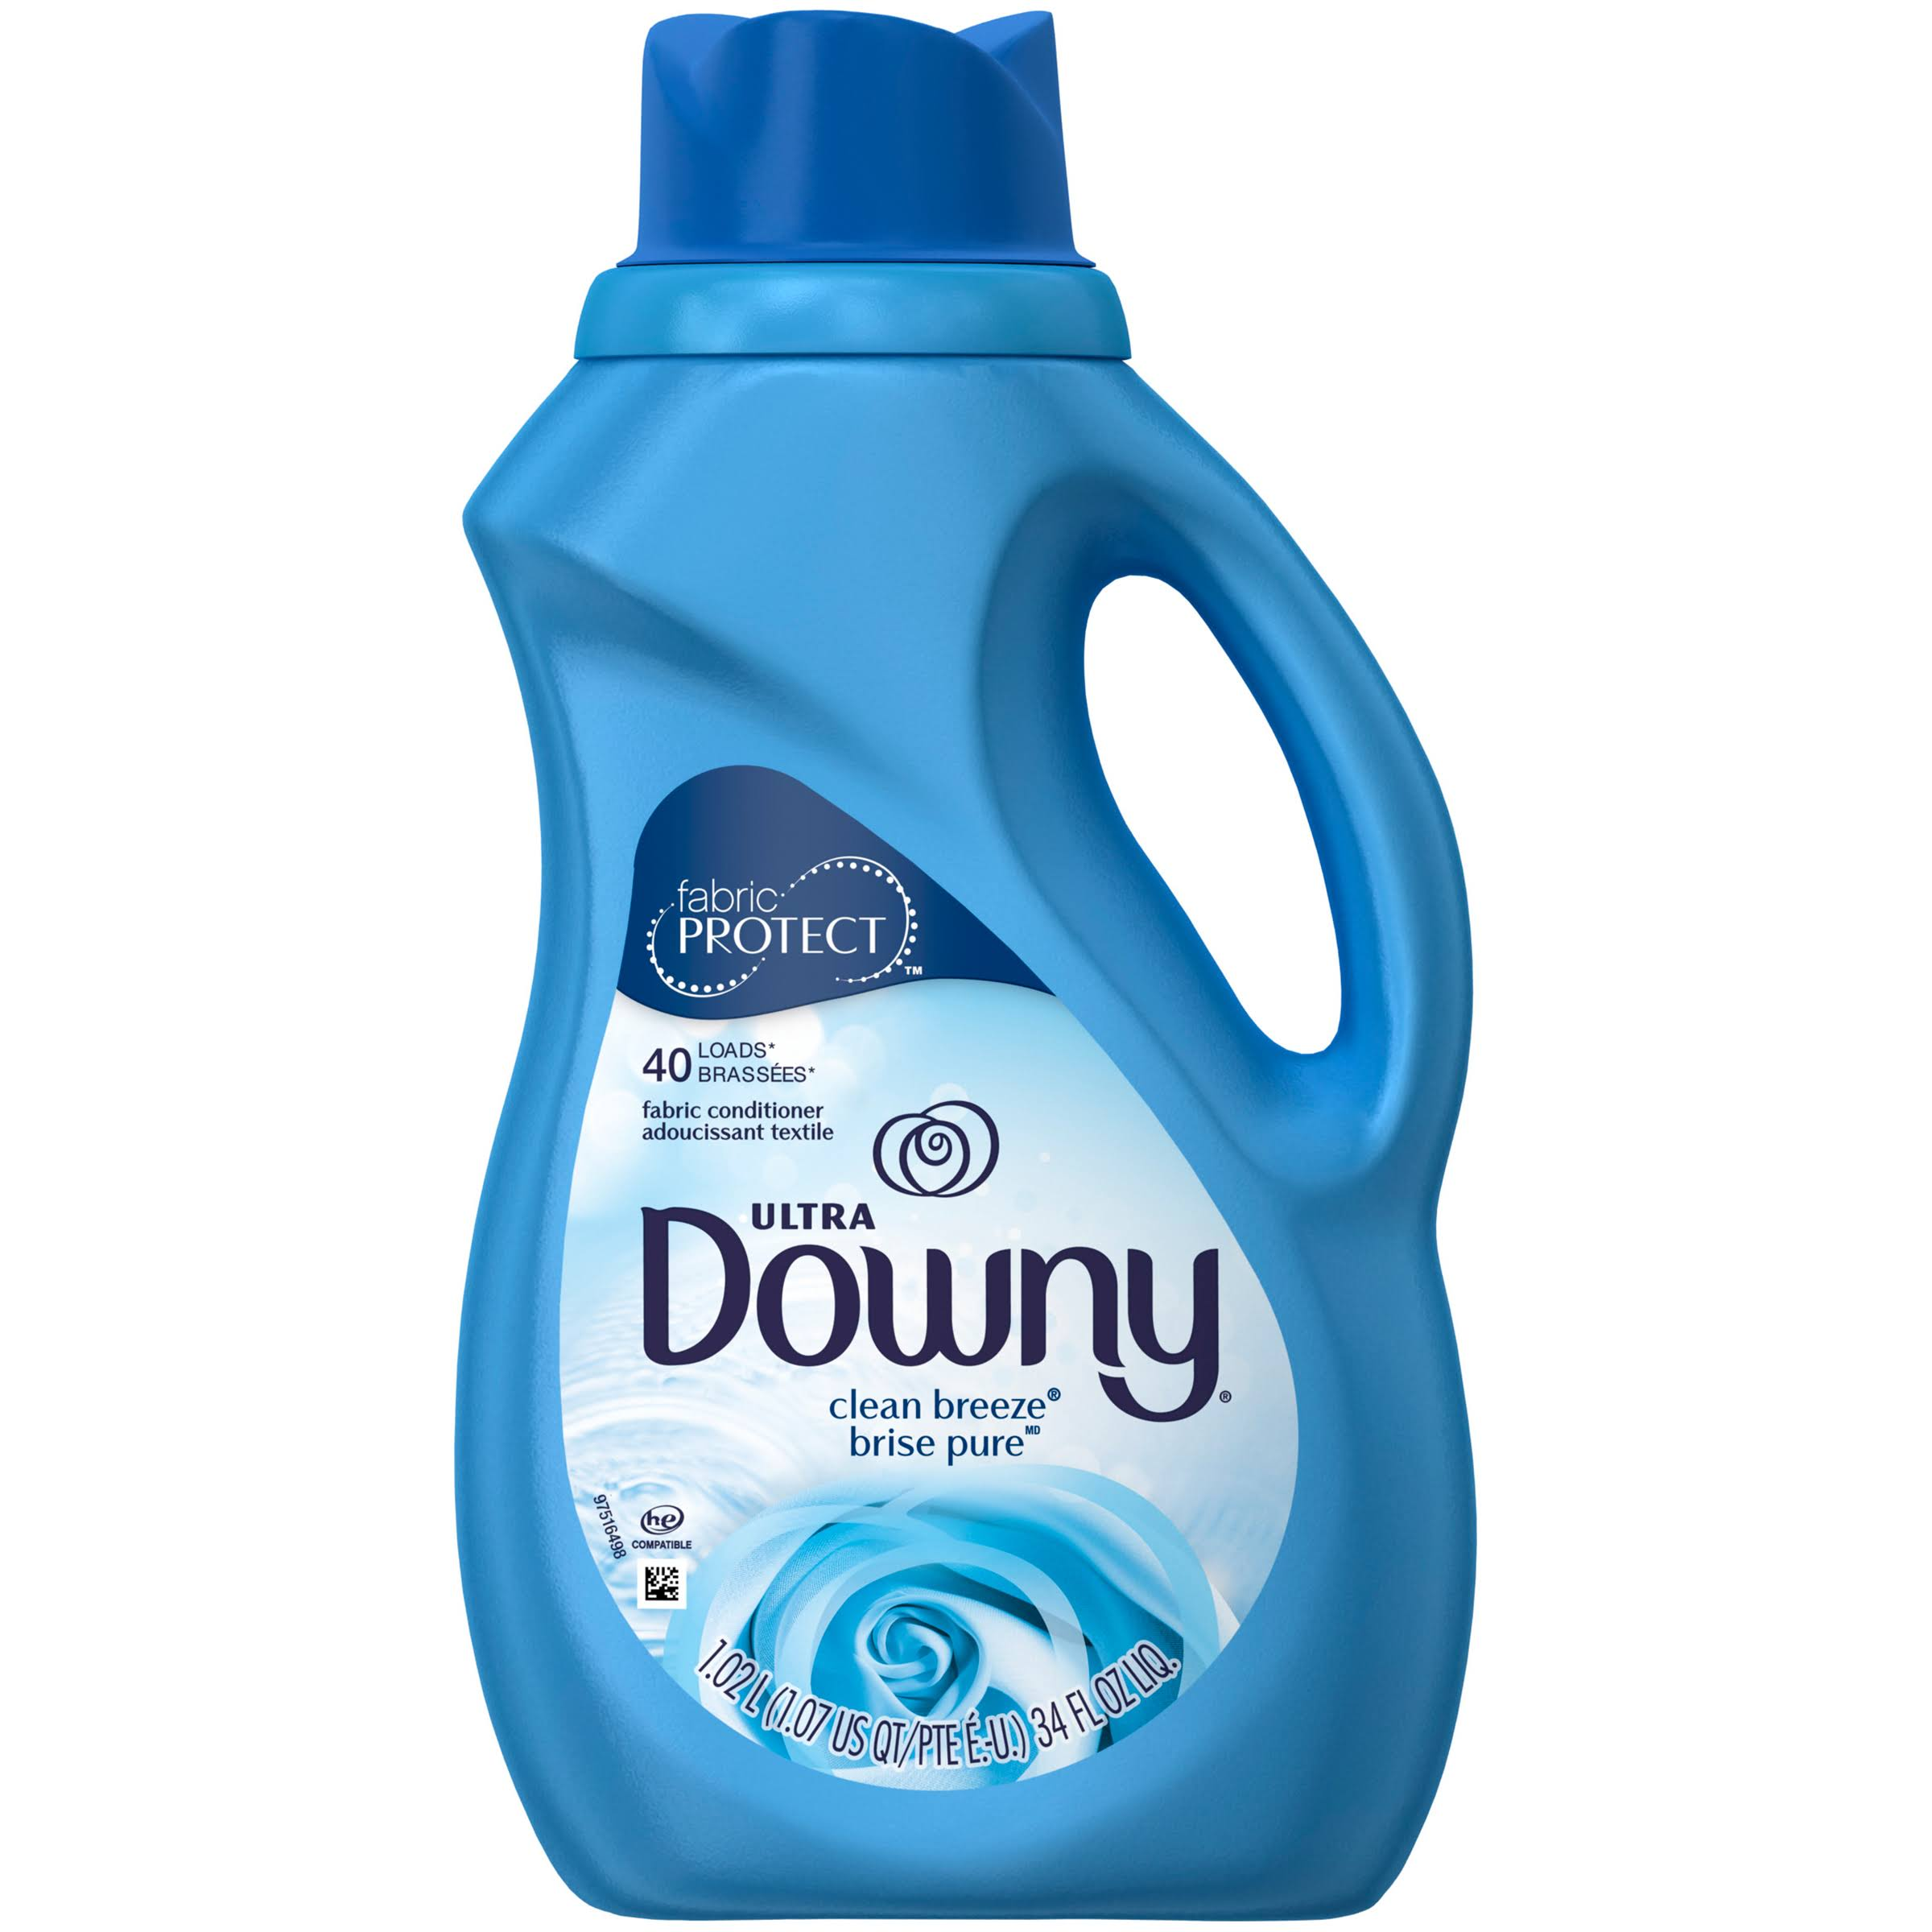 Downy Ultra Liquid Fabric Softener - Clean Breeze